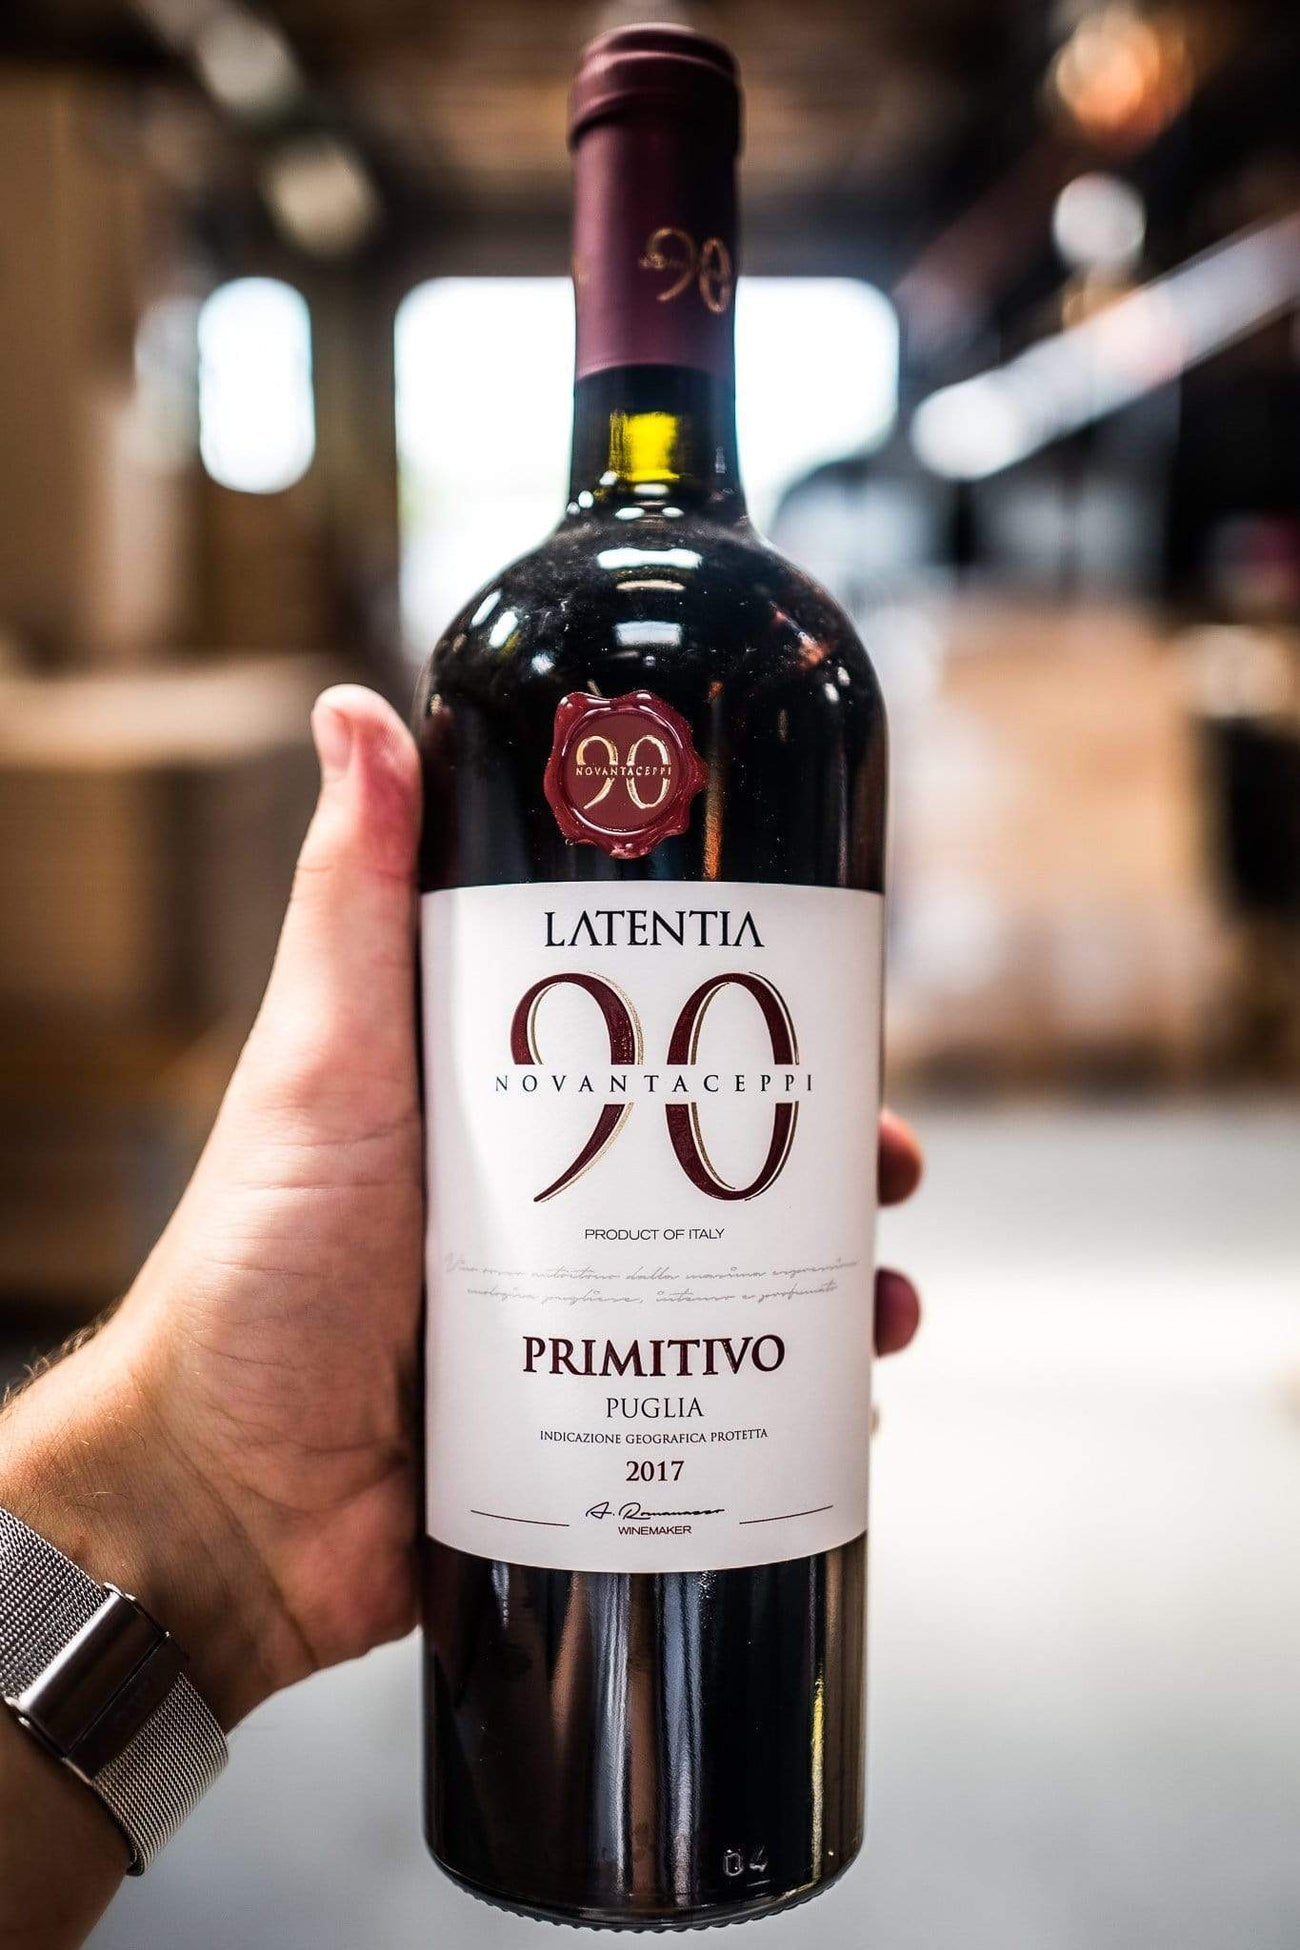 Latentia Novantaceppi 90 Primitivo 2017